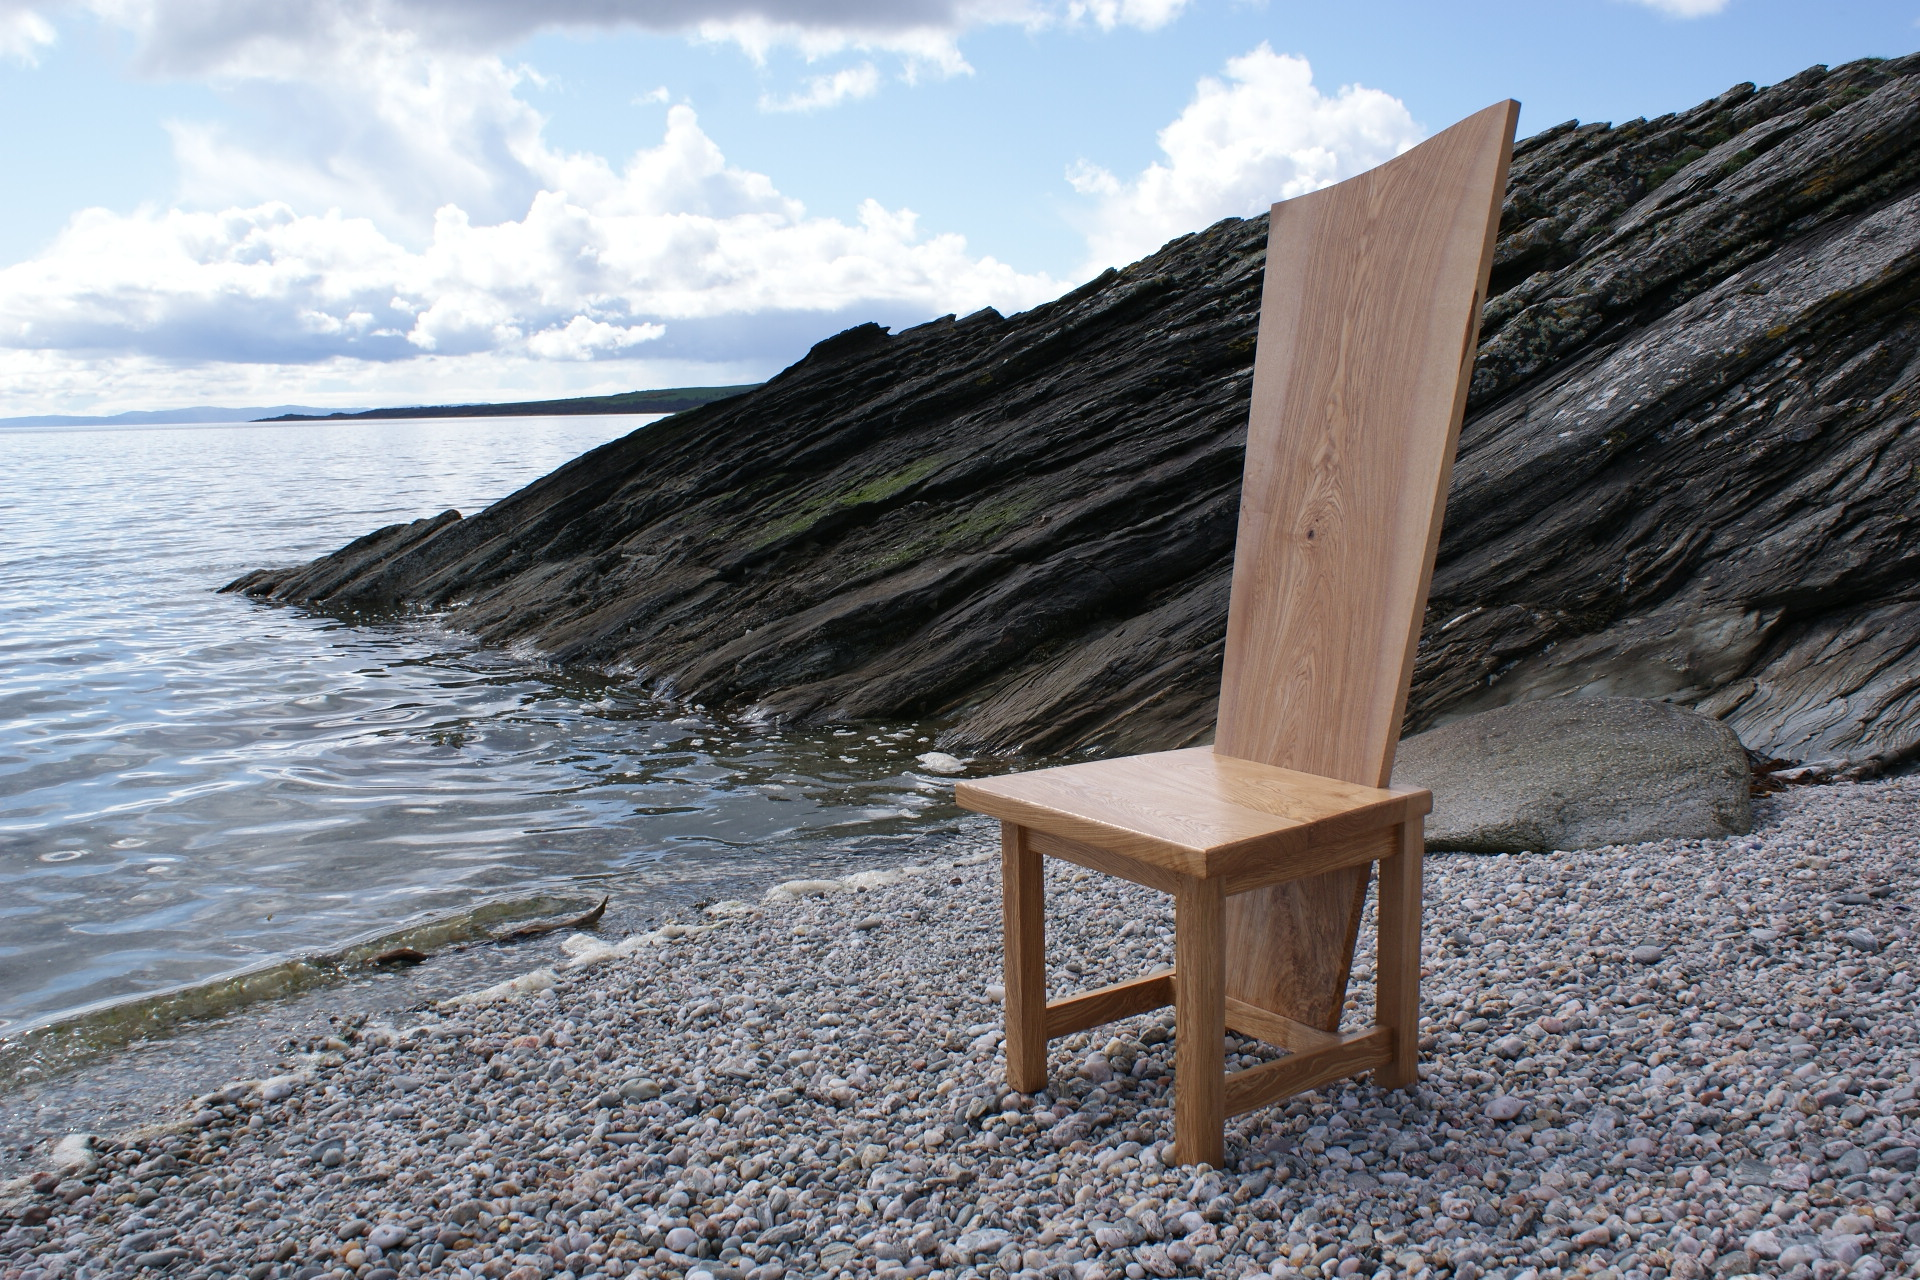 One of Ray Beverley's Unique Chairys